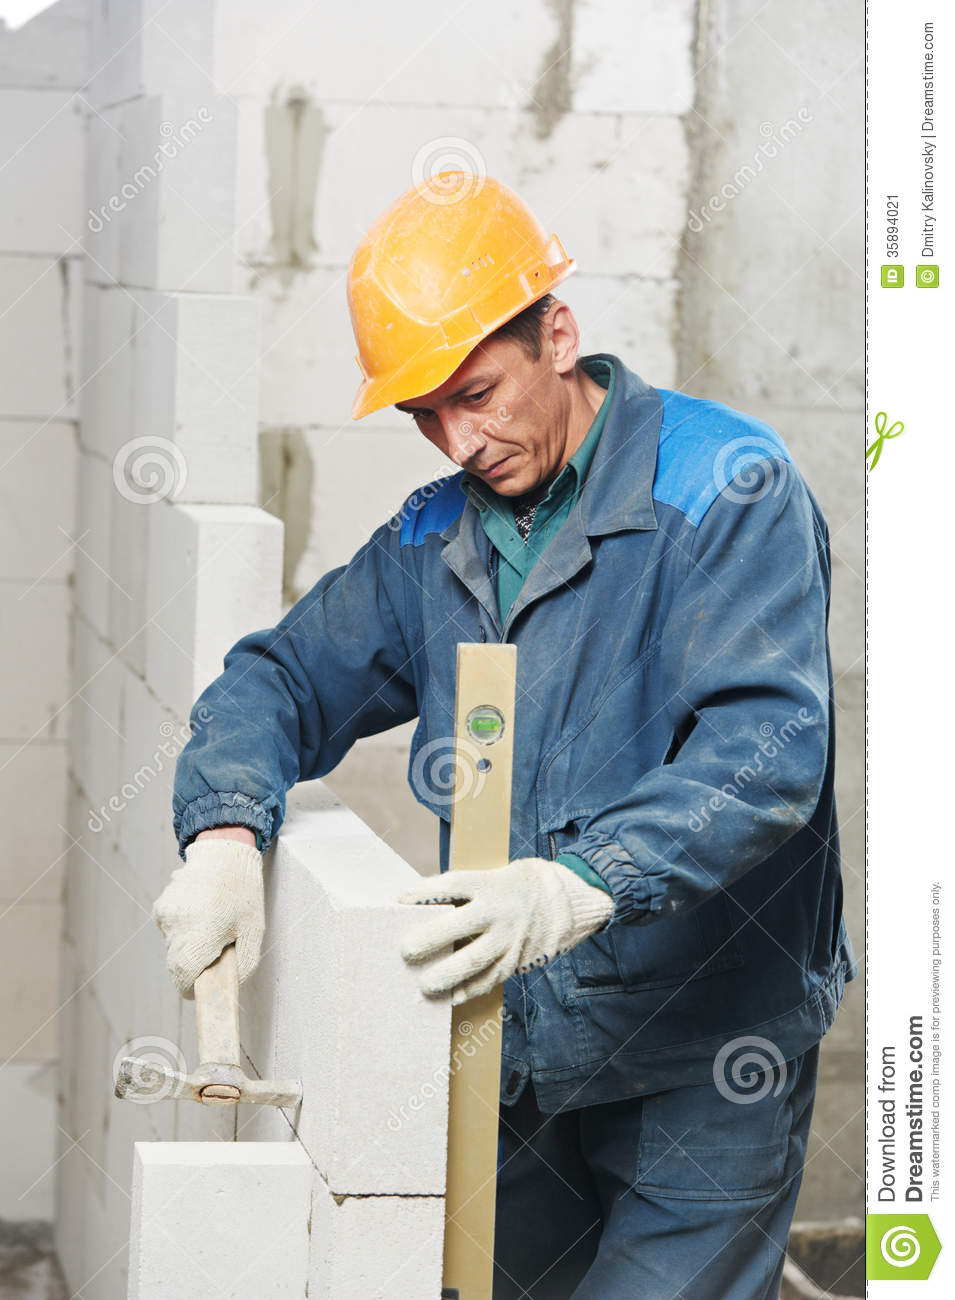 Calcium Silicate Brick Chipped : Construction mason worker bricklayer with level stock